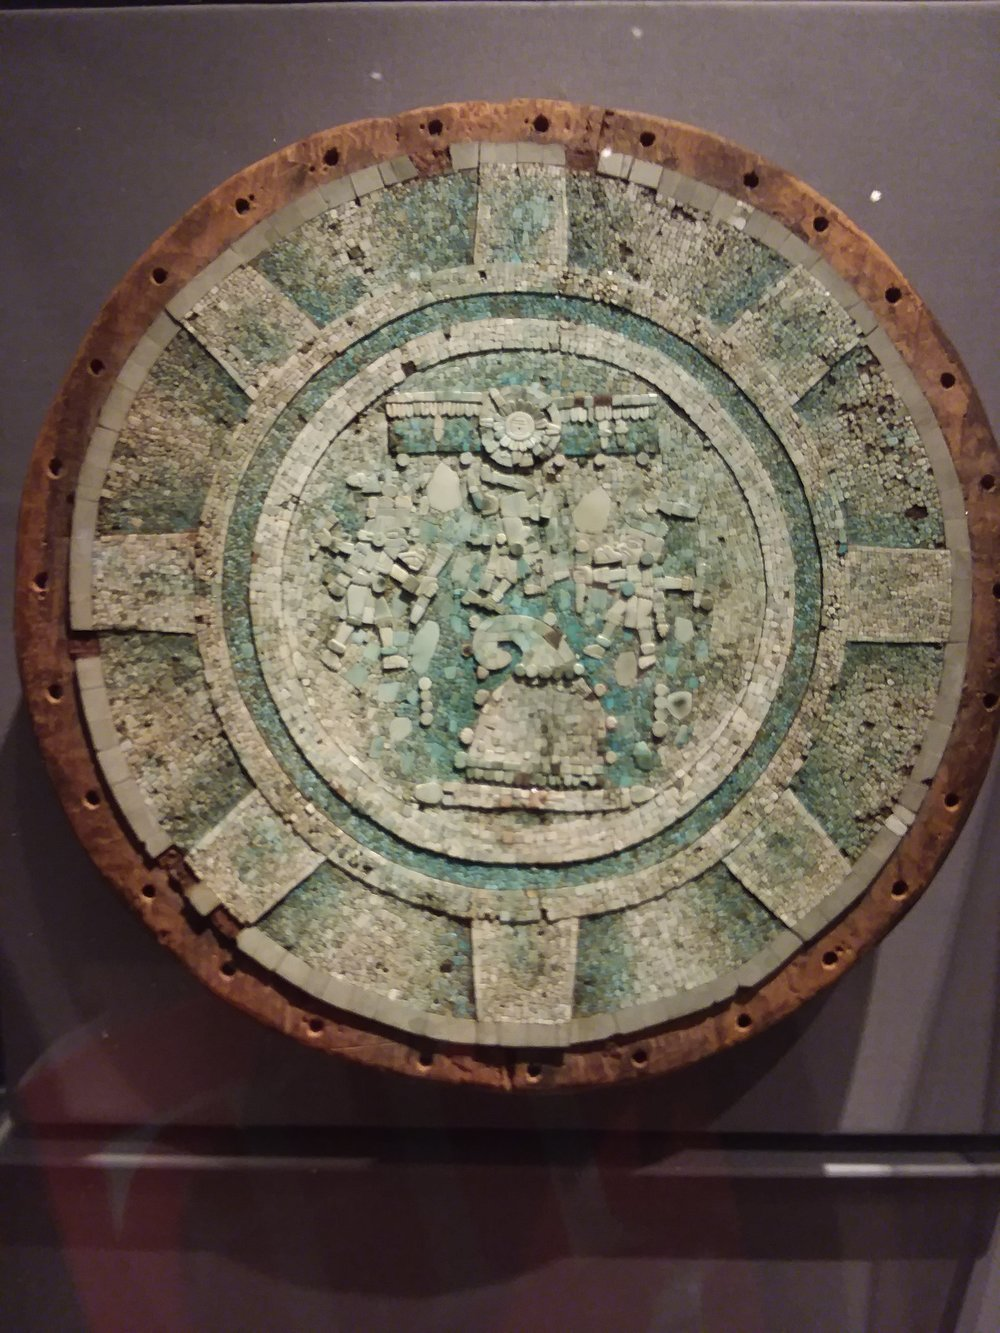 Exhibit about Mexico - The Met